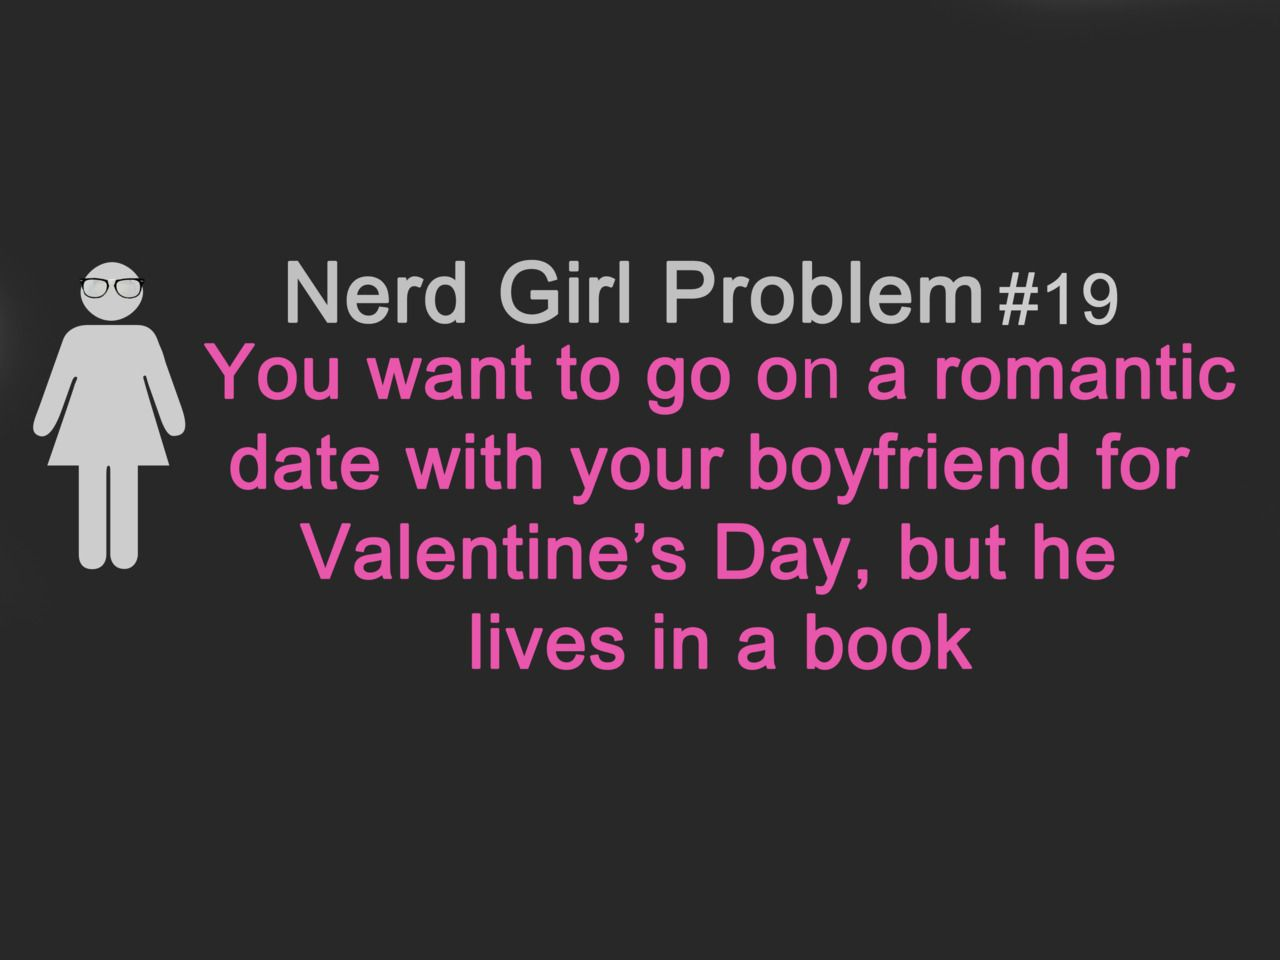 Libros Xd Nerd 43girl 43problems Mundinho Insano Nerd Girl Problems